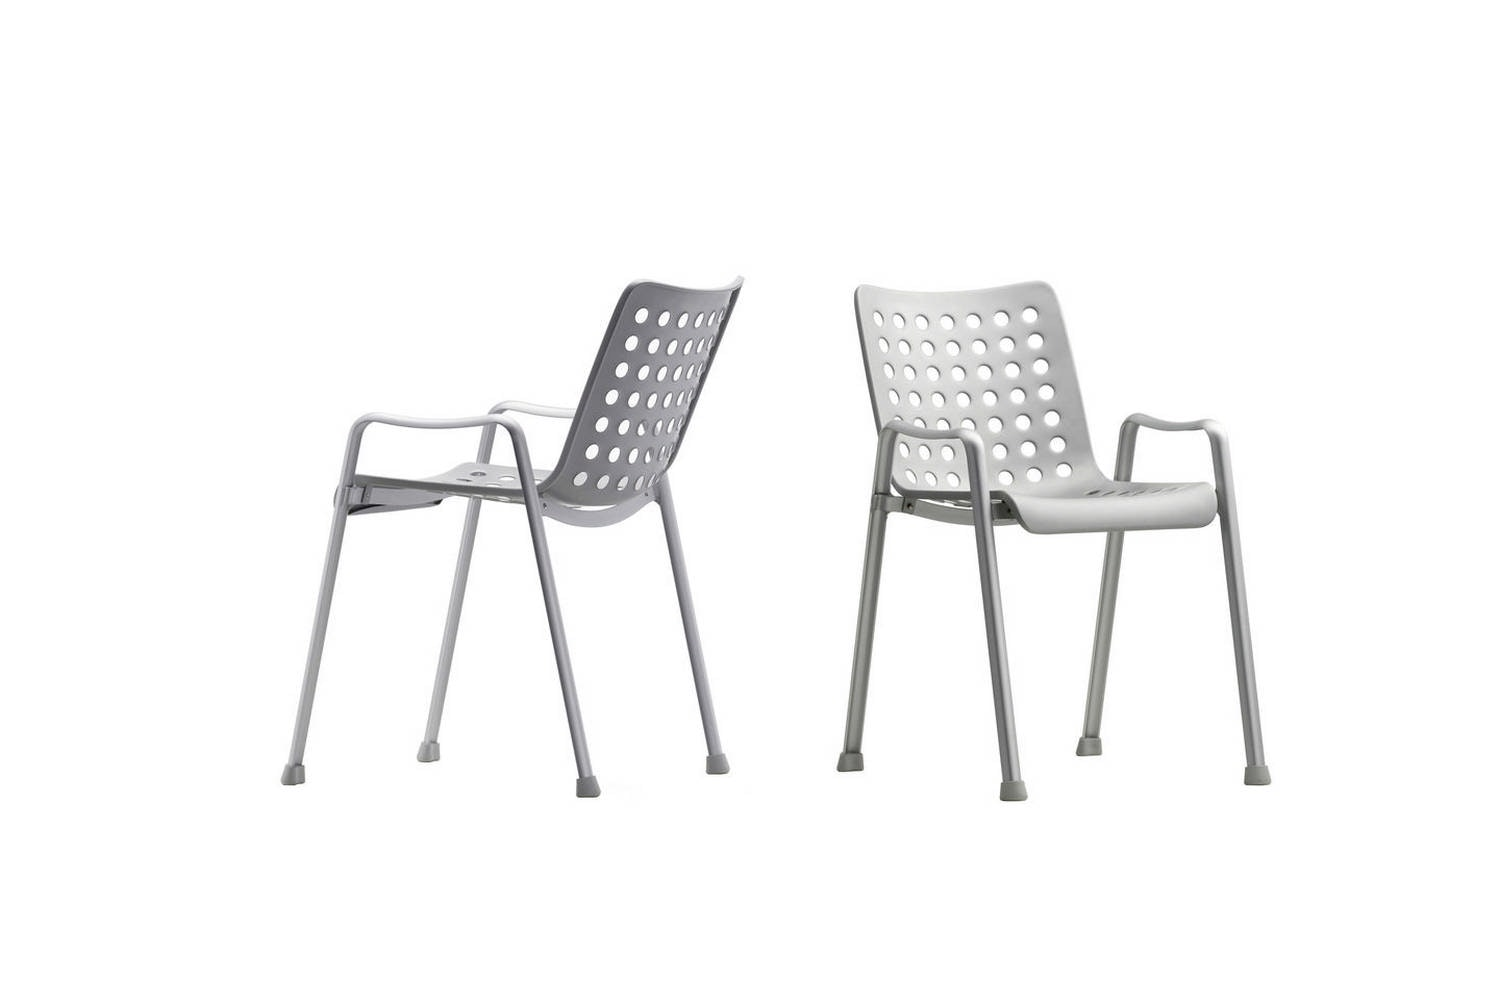 Landi Chair by Hans Coray for Vitra